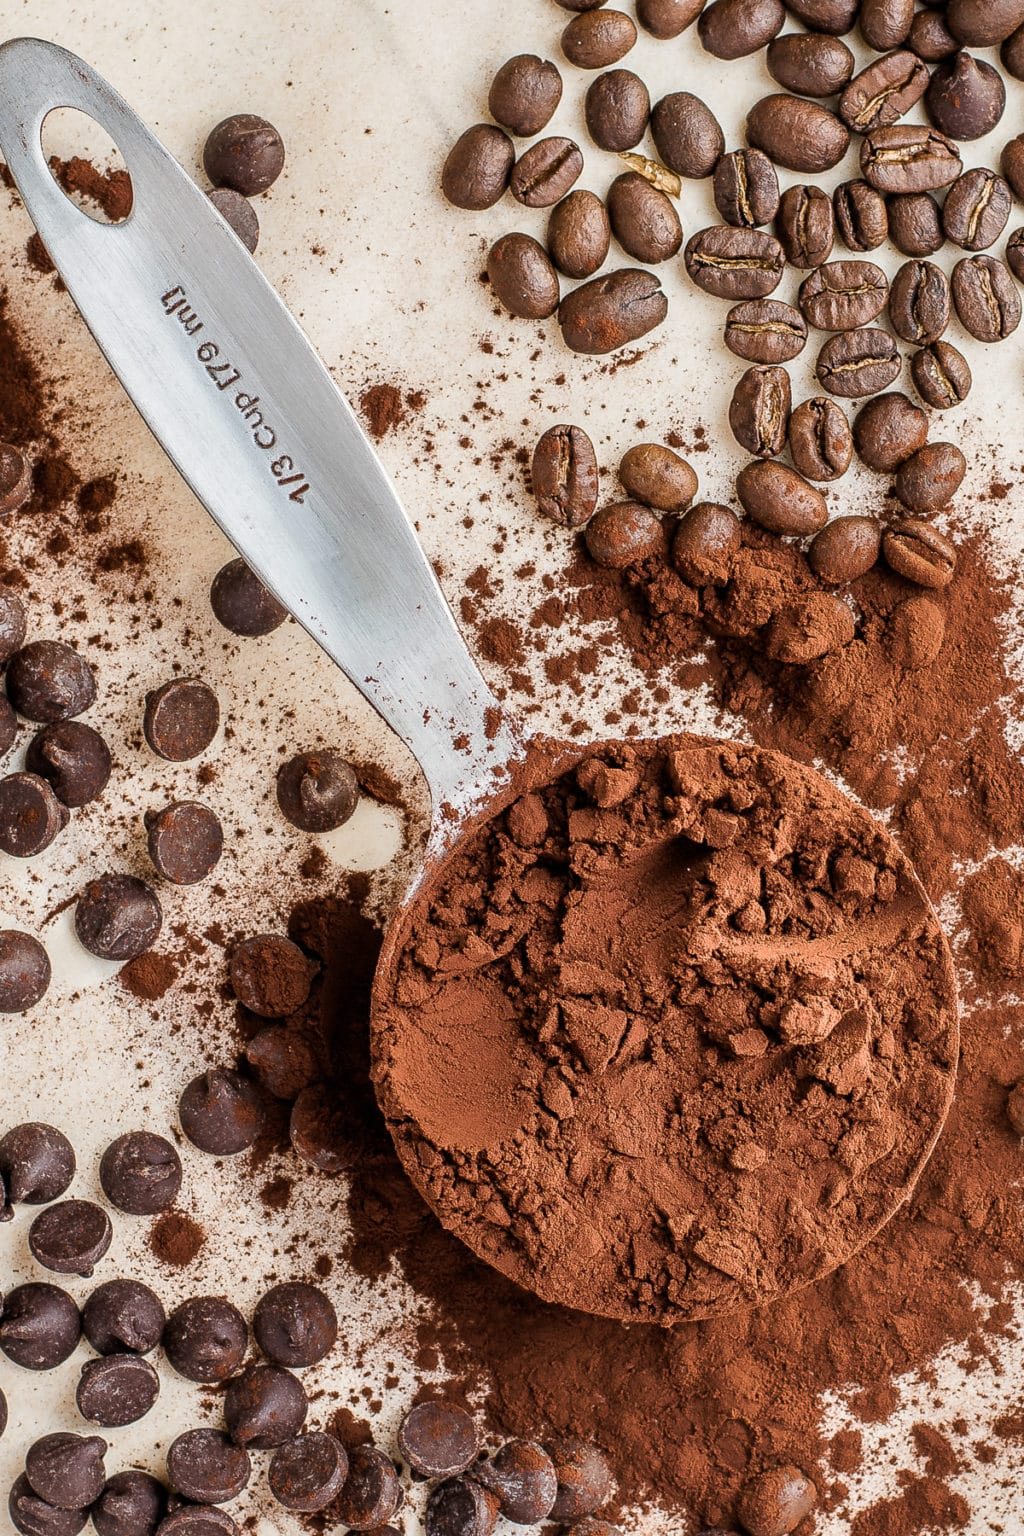 measuring cup with dark cocoa powder surrounded by dark chocolate chips and roasted coffee beans